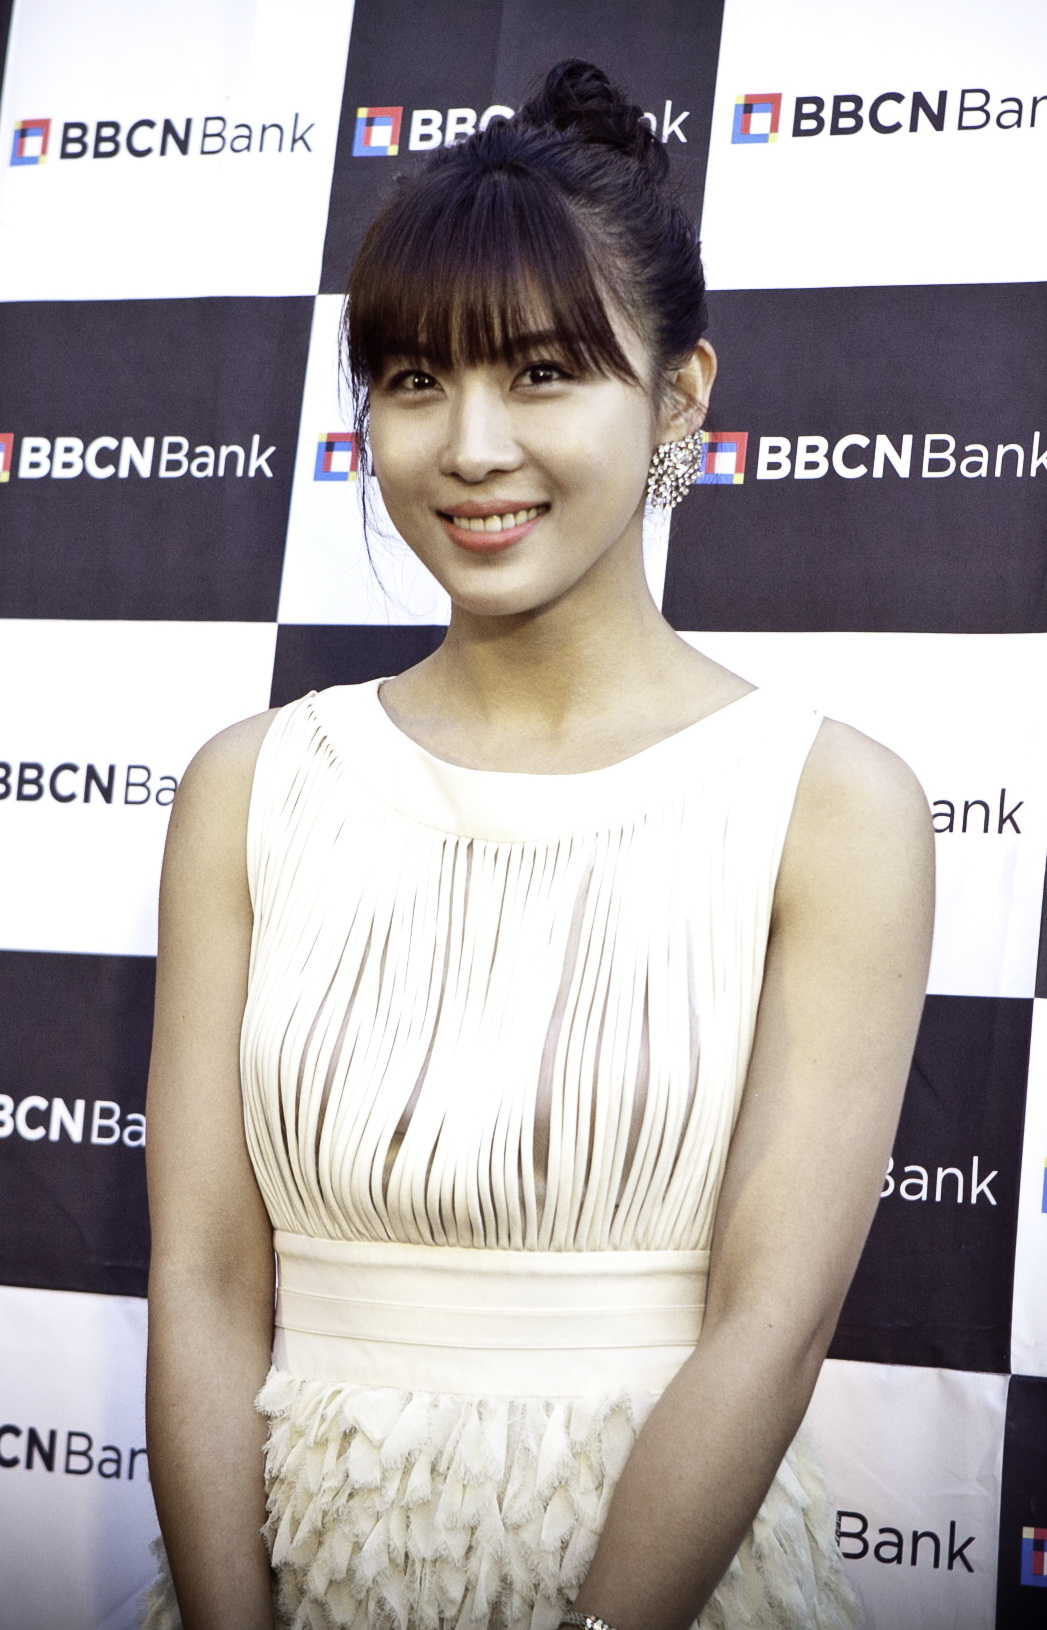 The 40-year old daughter of father Ta Hwan and mother Seung Nyang Ha Ji Won in 2018 photo. Ha Ji Won earned a  million dollar salary - leaving the net worth at 1 million in 2018